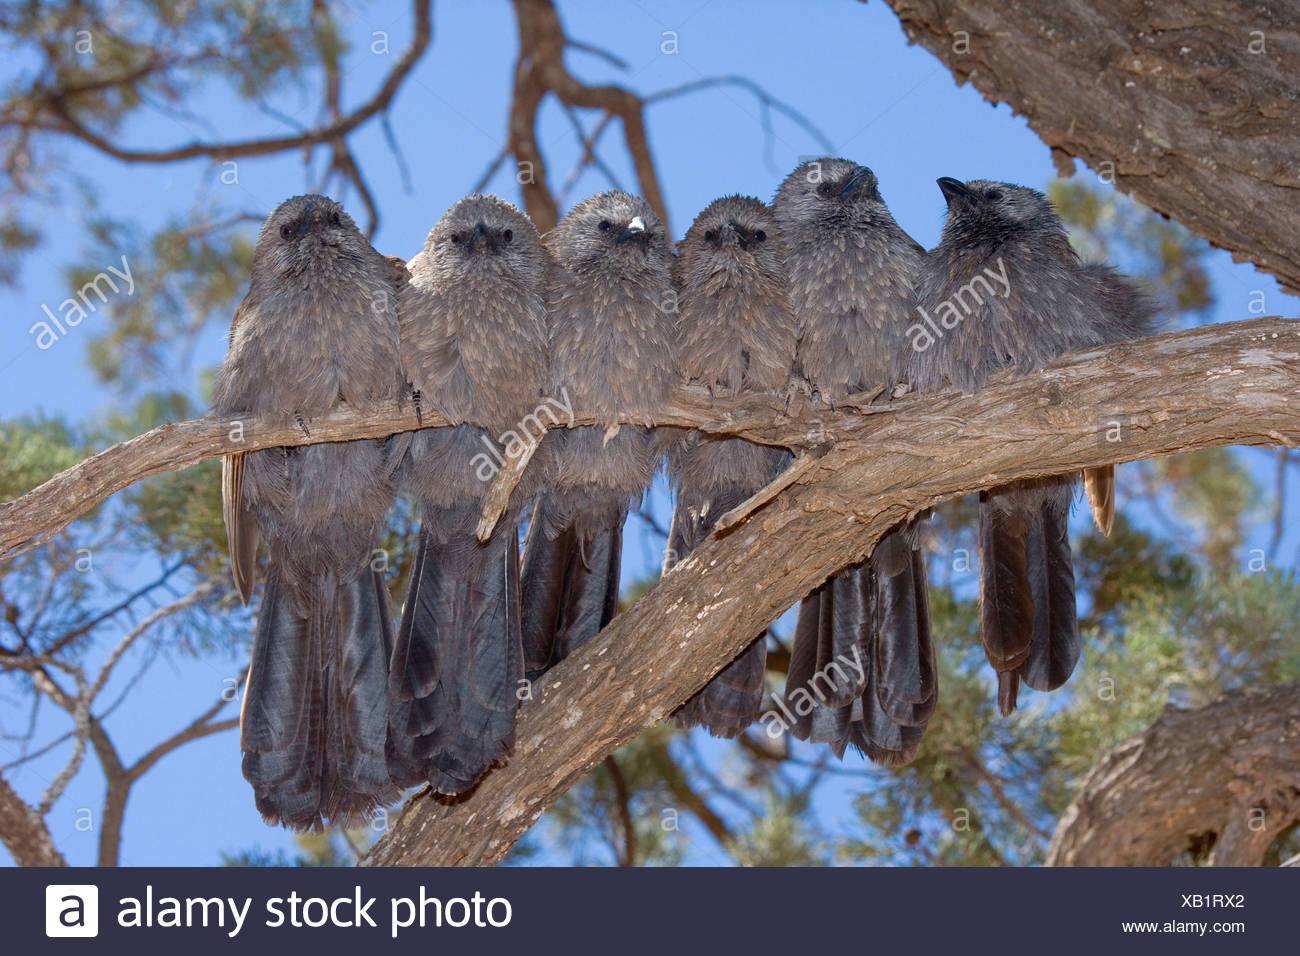 Apostlebird (Struthidea cinerea), six individuals sit tightly pressed together side by side on a tree branch , Australia, New South Wales, Mungo National Park - Stock Image